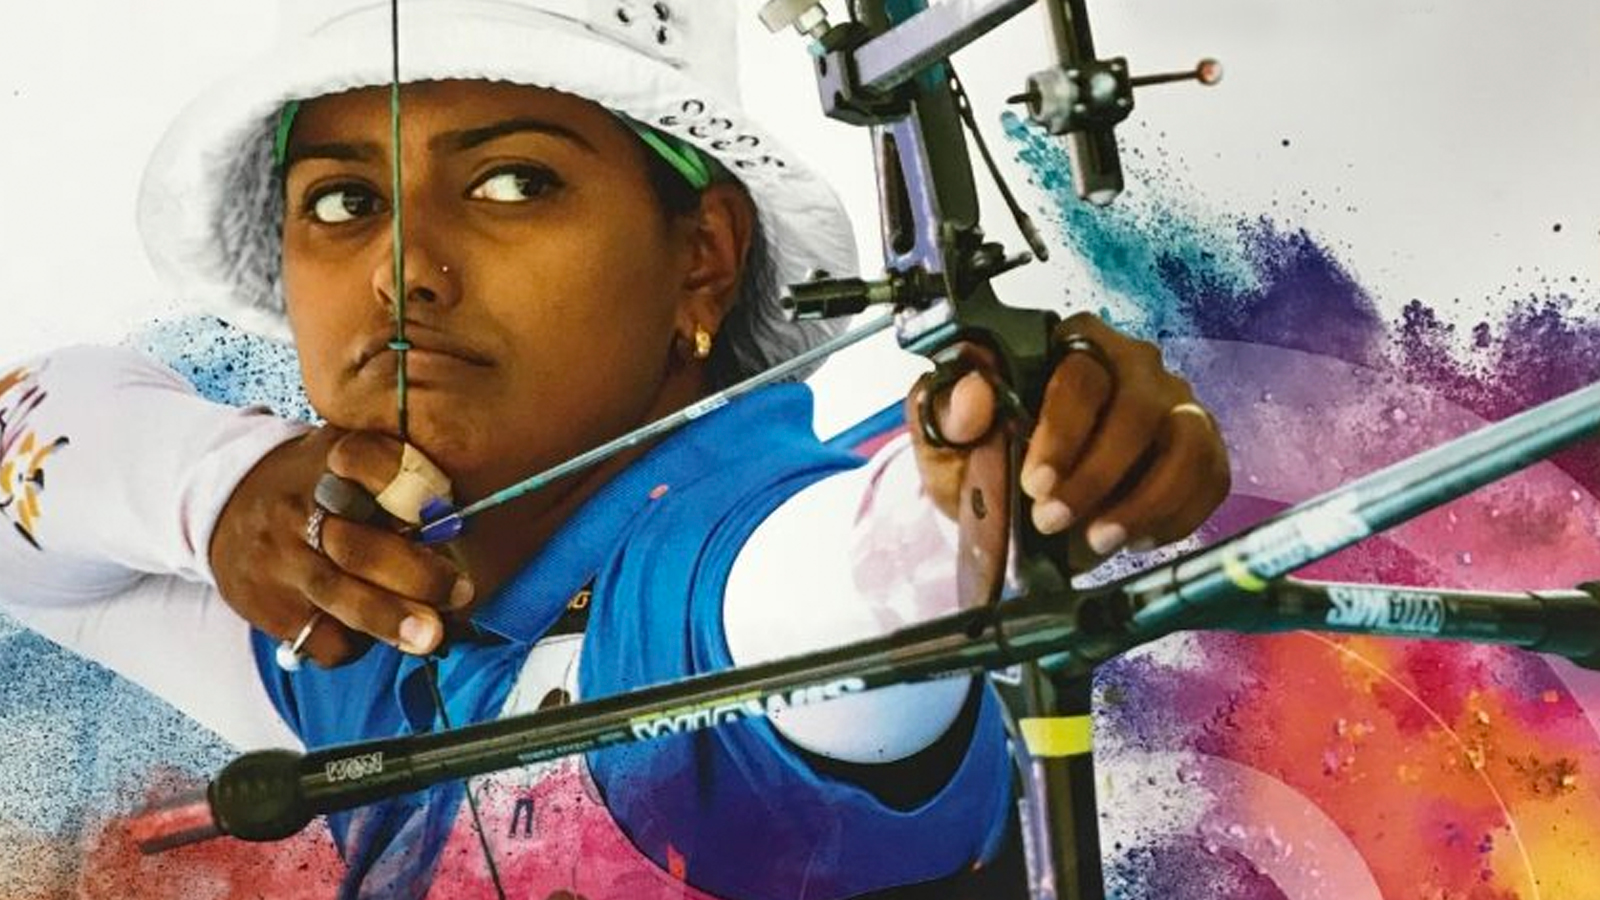 Archery not to be included on sport programme at Birmingham